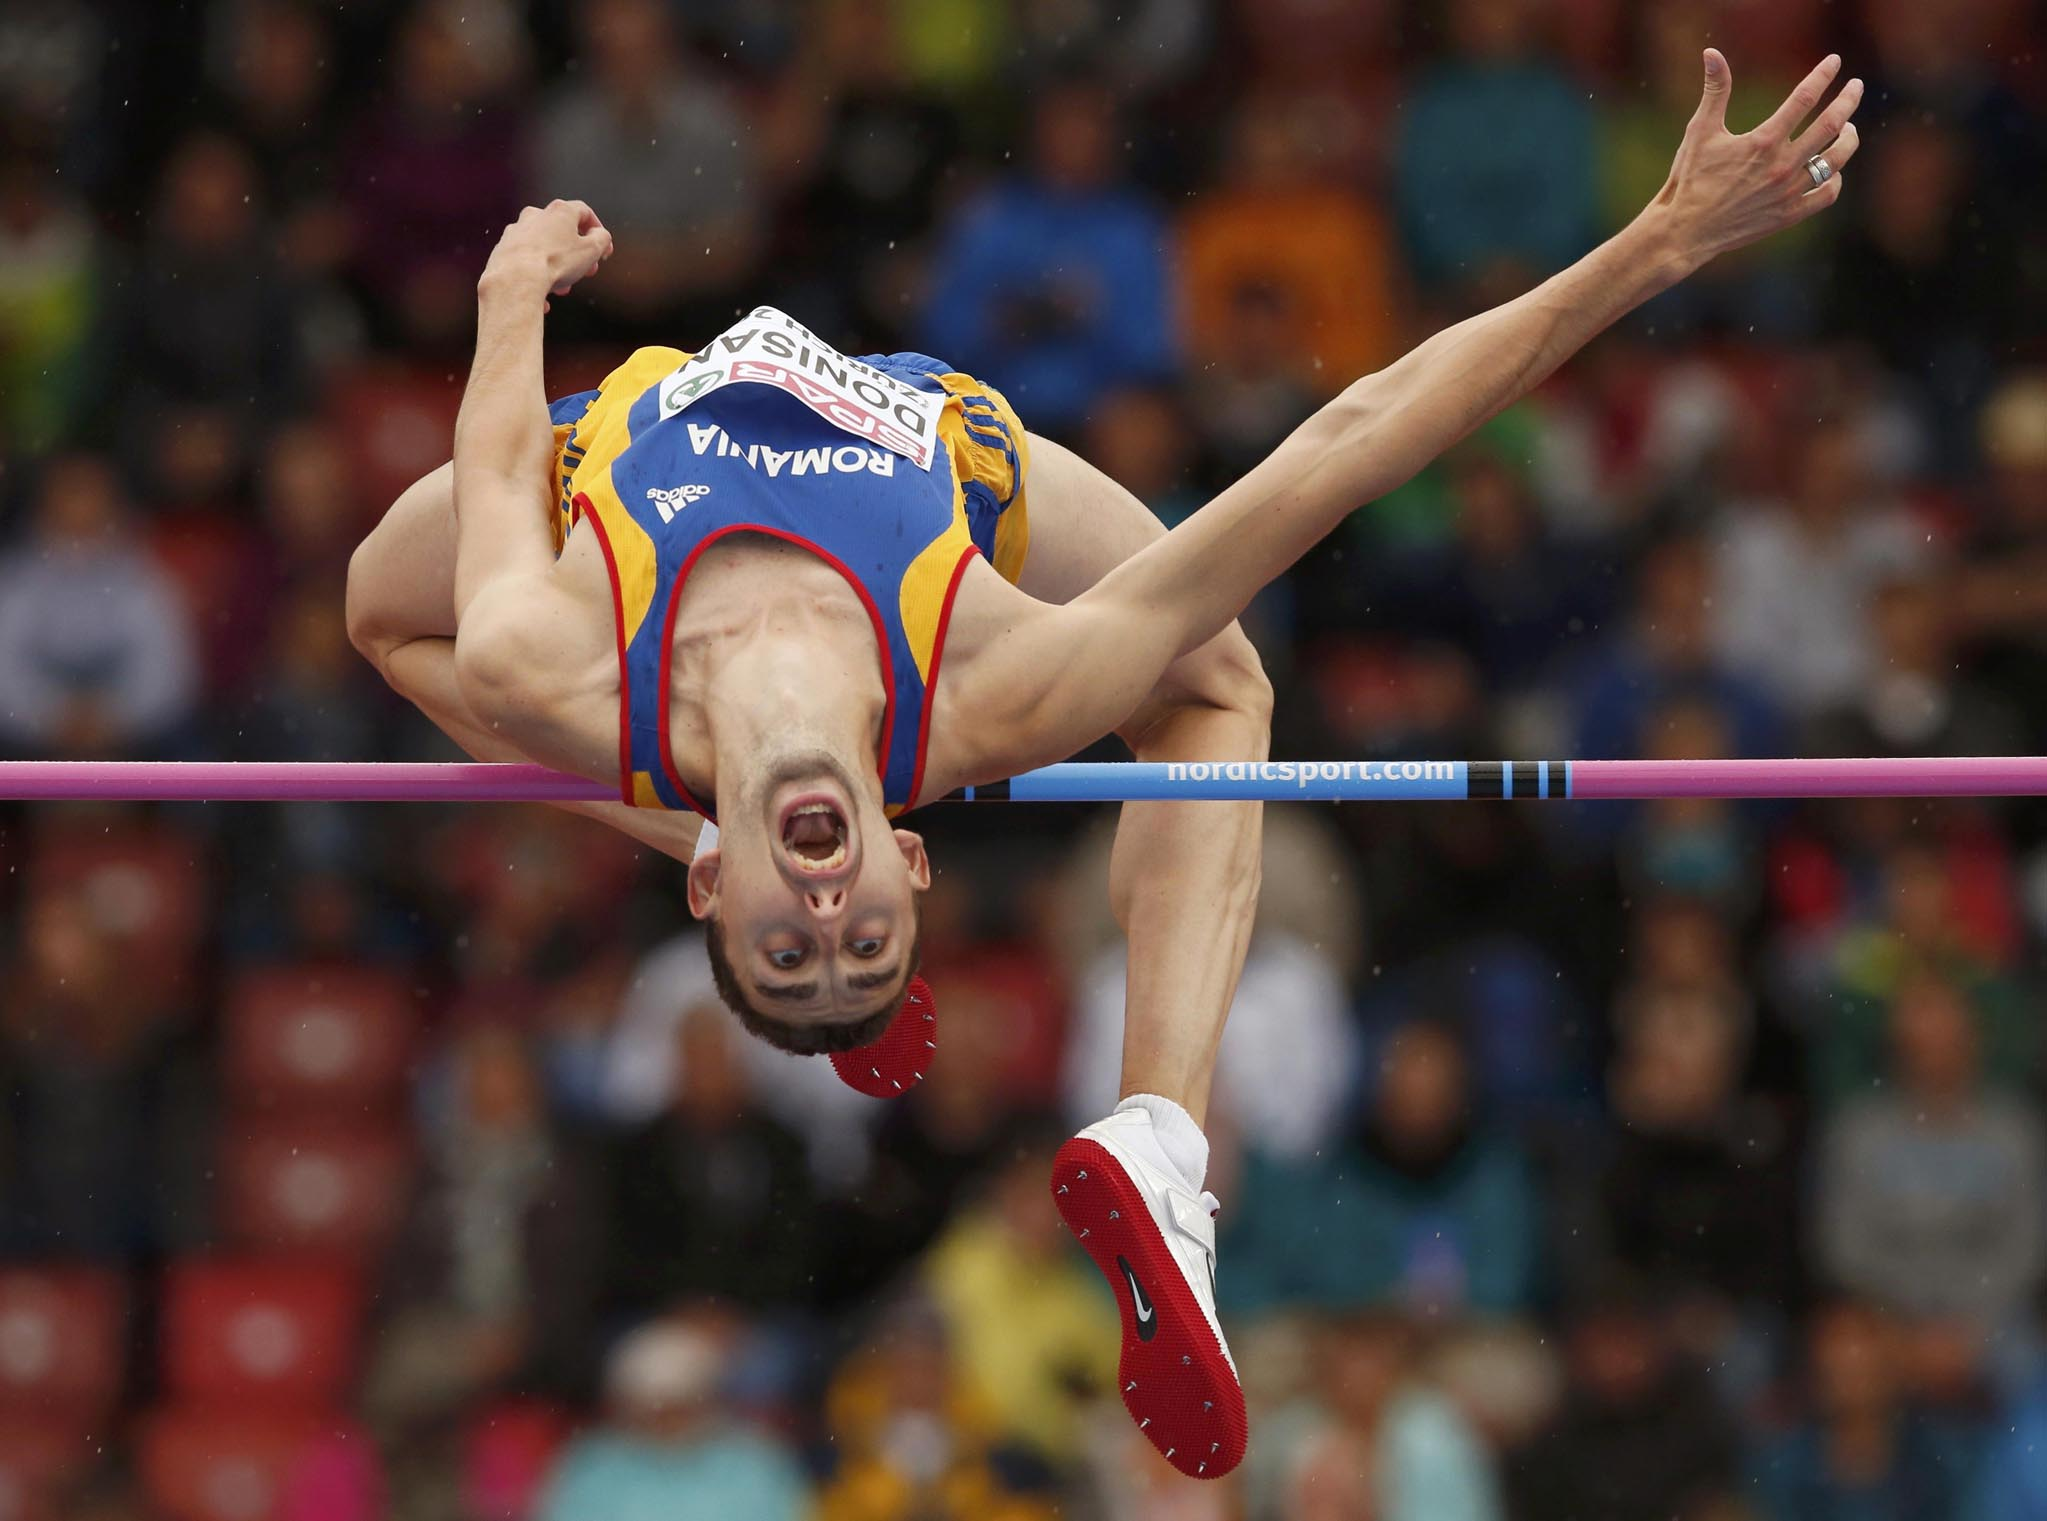 Donisan of Romania competes in men's high jump during European Athletics Championships in Zurich